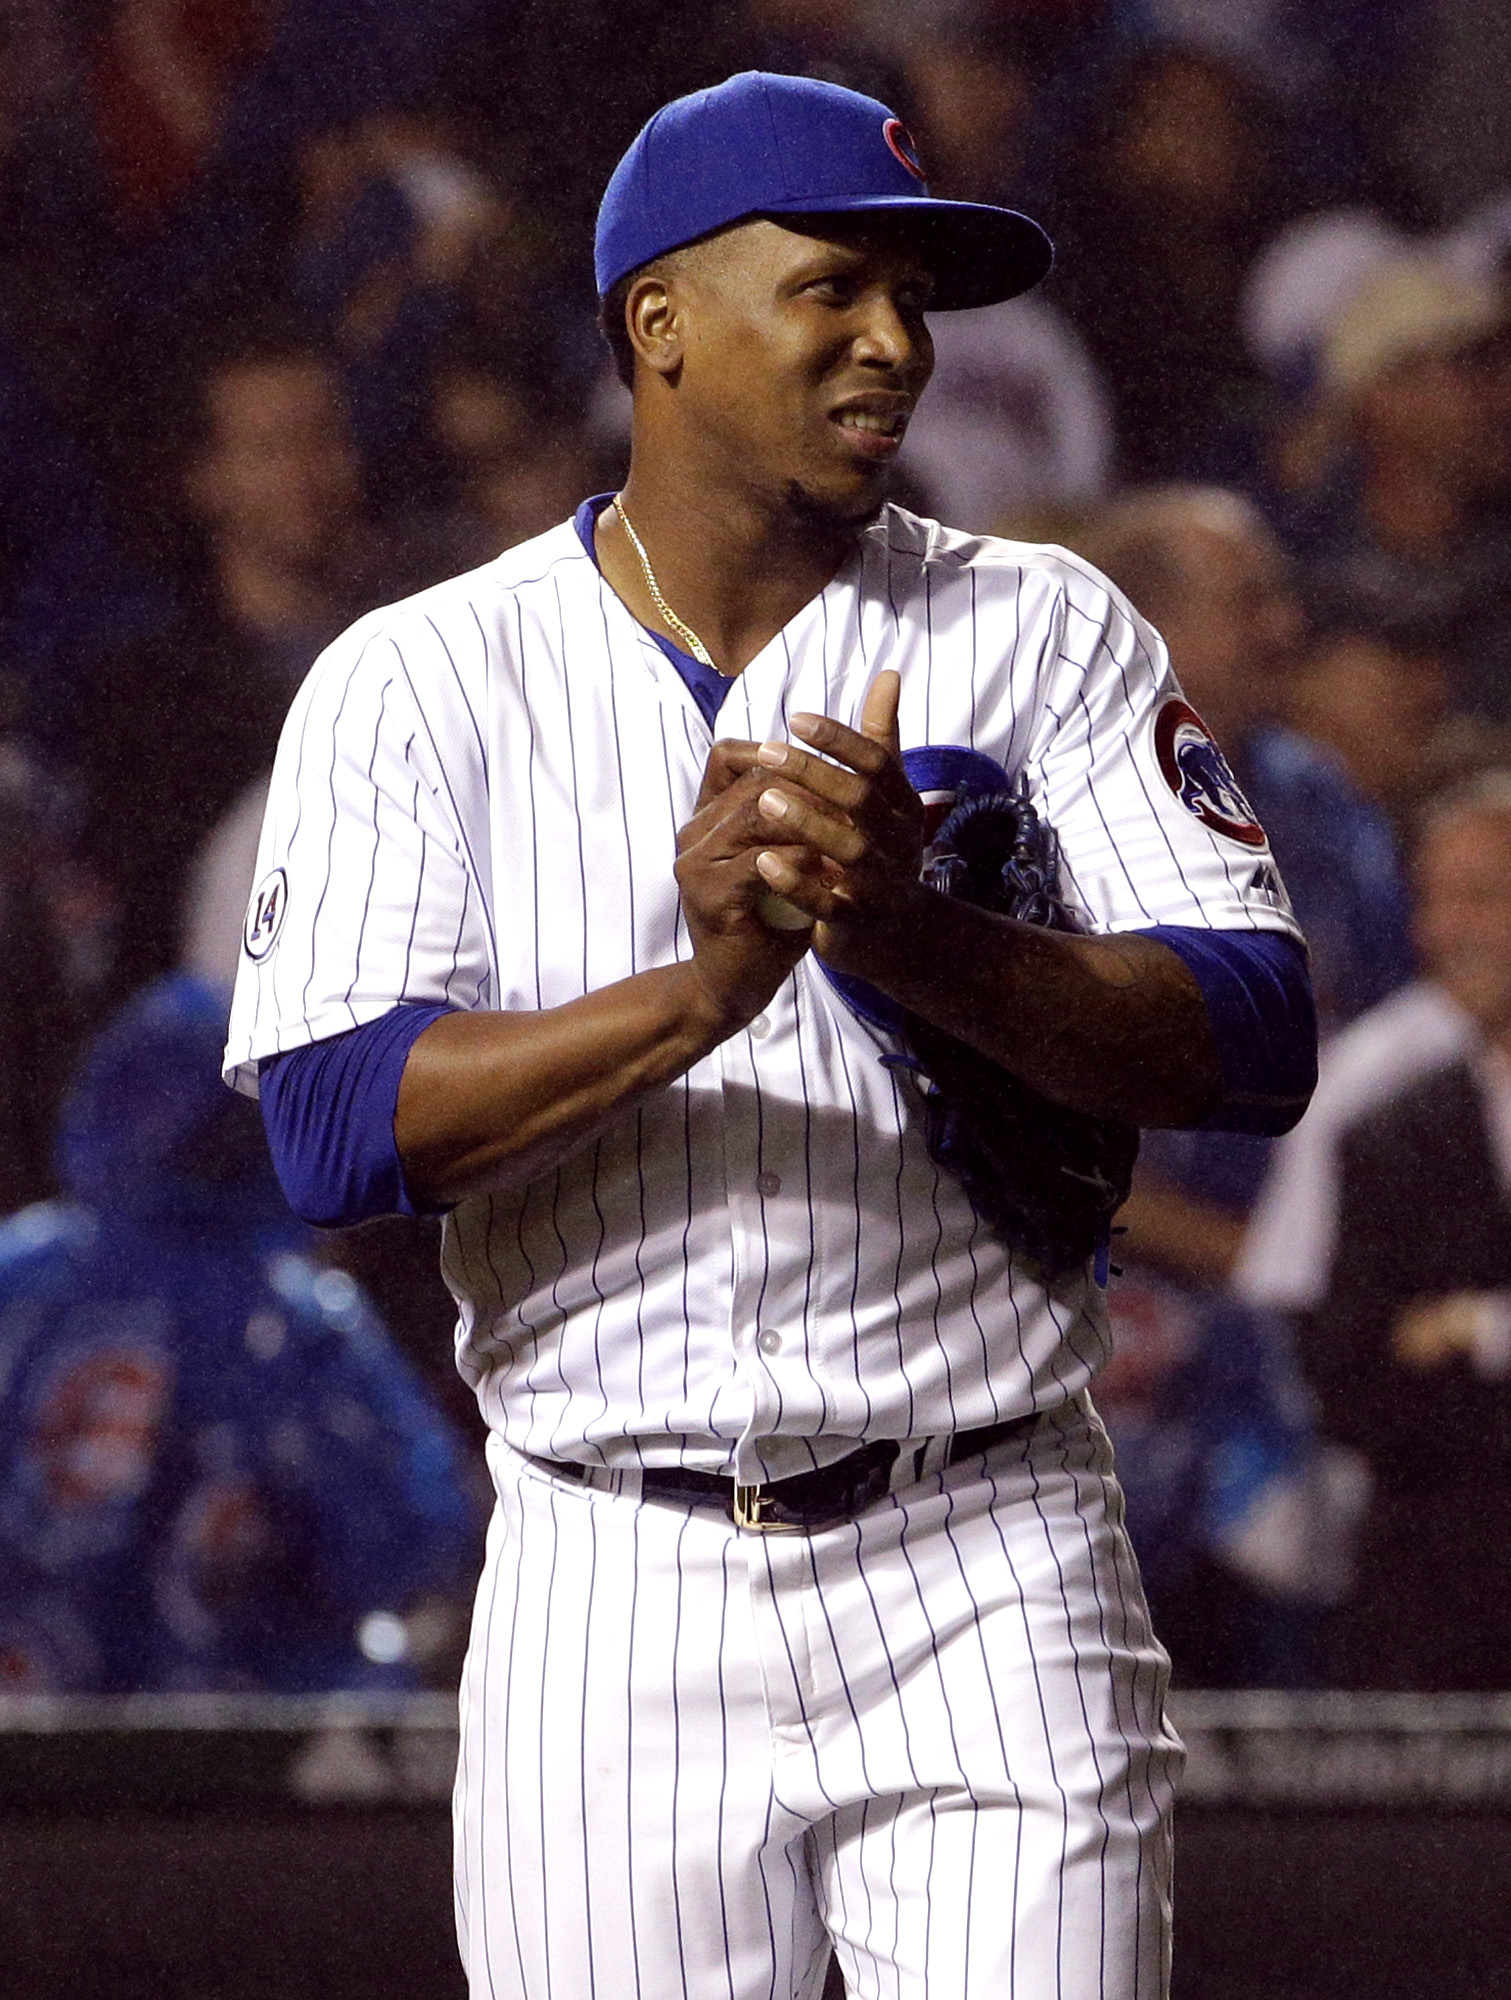 Chicago Cubs relief pitcher Pedro Strop reacts after St. Louis Cardinals' Jhonny Peralta hit a two-run home run during the ninth inning of a baseball game Wednesday, July 8, 2015, in Chicago. (AP Photo/Nam Y. Huh)